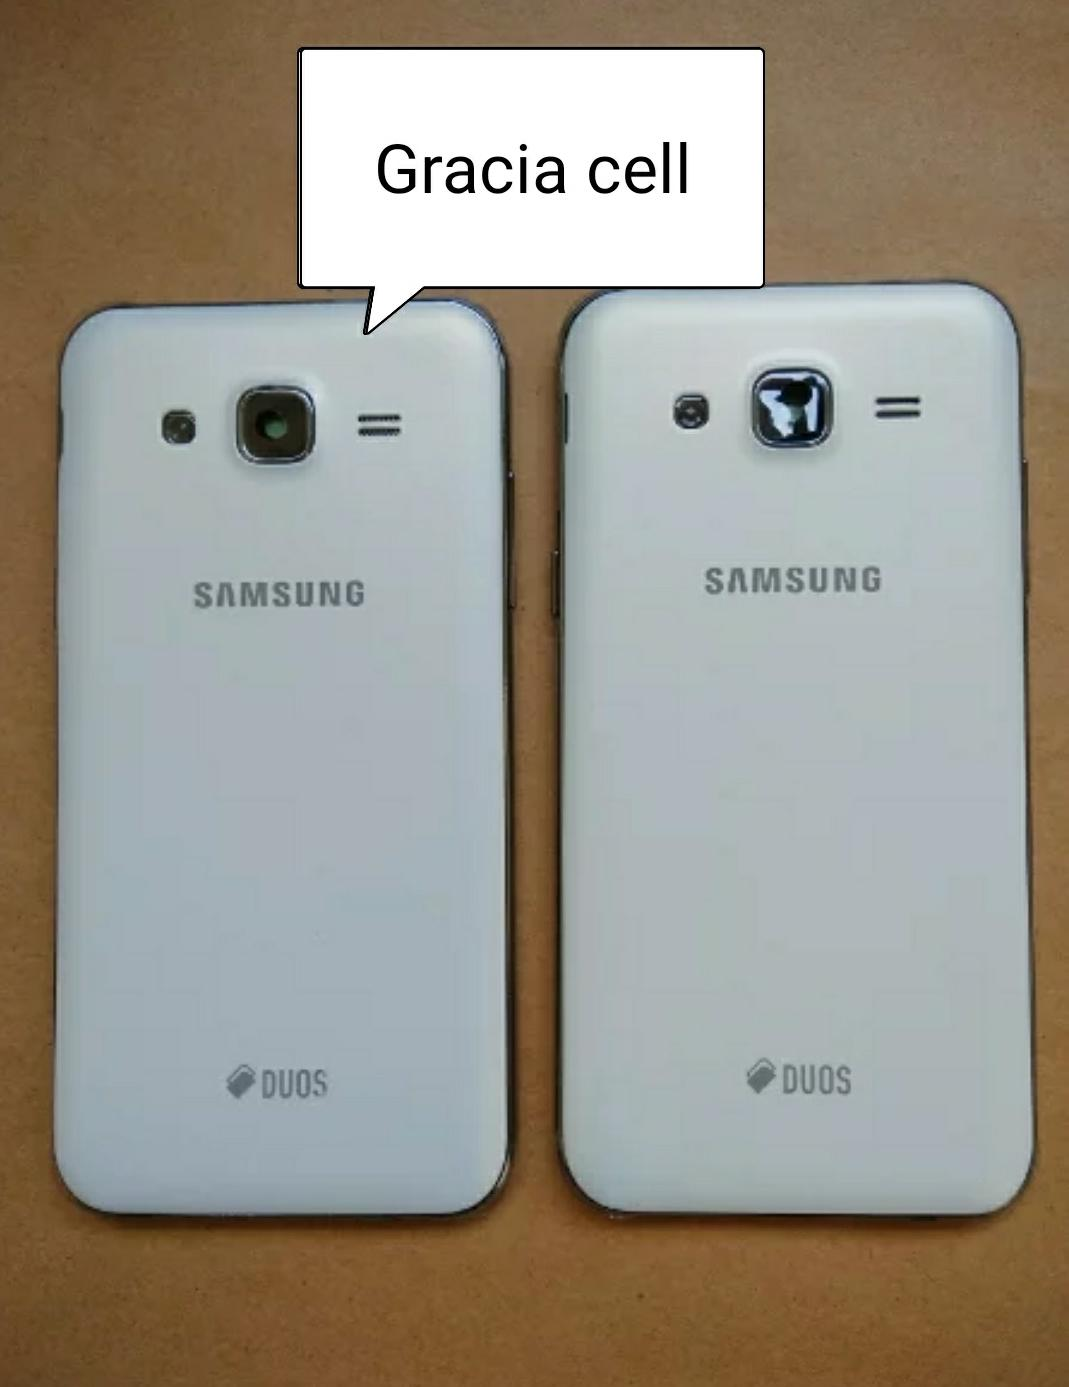 Buy Sell Cheapest Kesing Samsung Galaxy Best Quality Product Deals Ace 3 Housing Casing Cassing J500g J500h J5 2015 Fs Color Family White